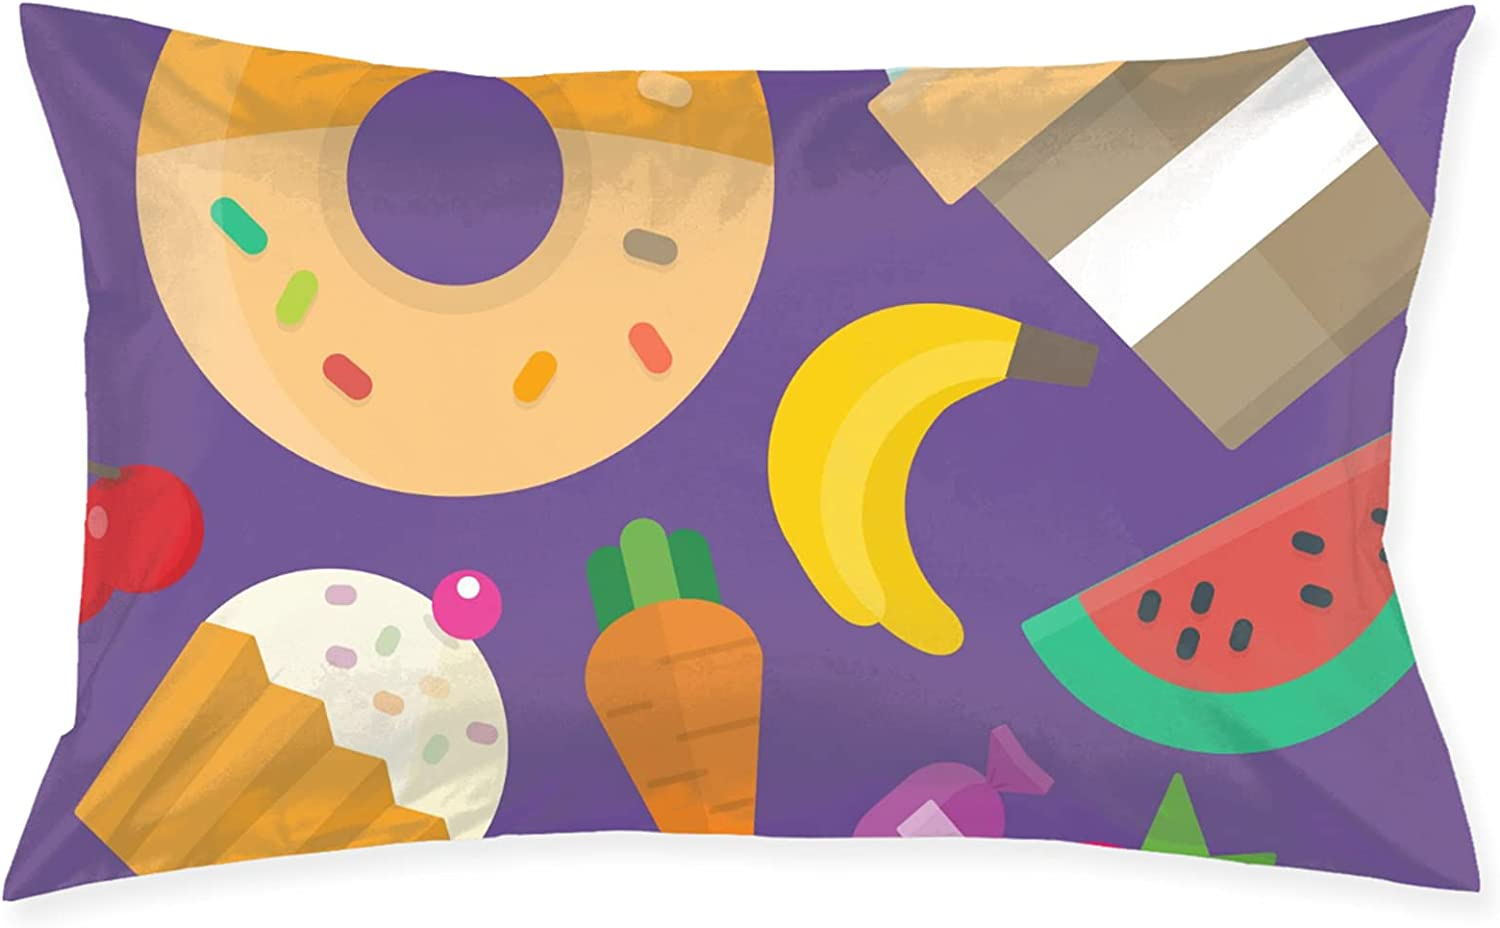 Delicious Food NEW before selling ☆ Pillows Pillowcase Sales Pillow Sleeping Bed